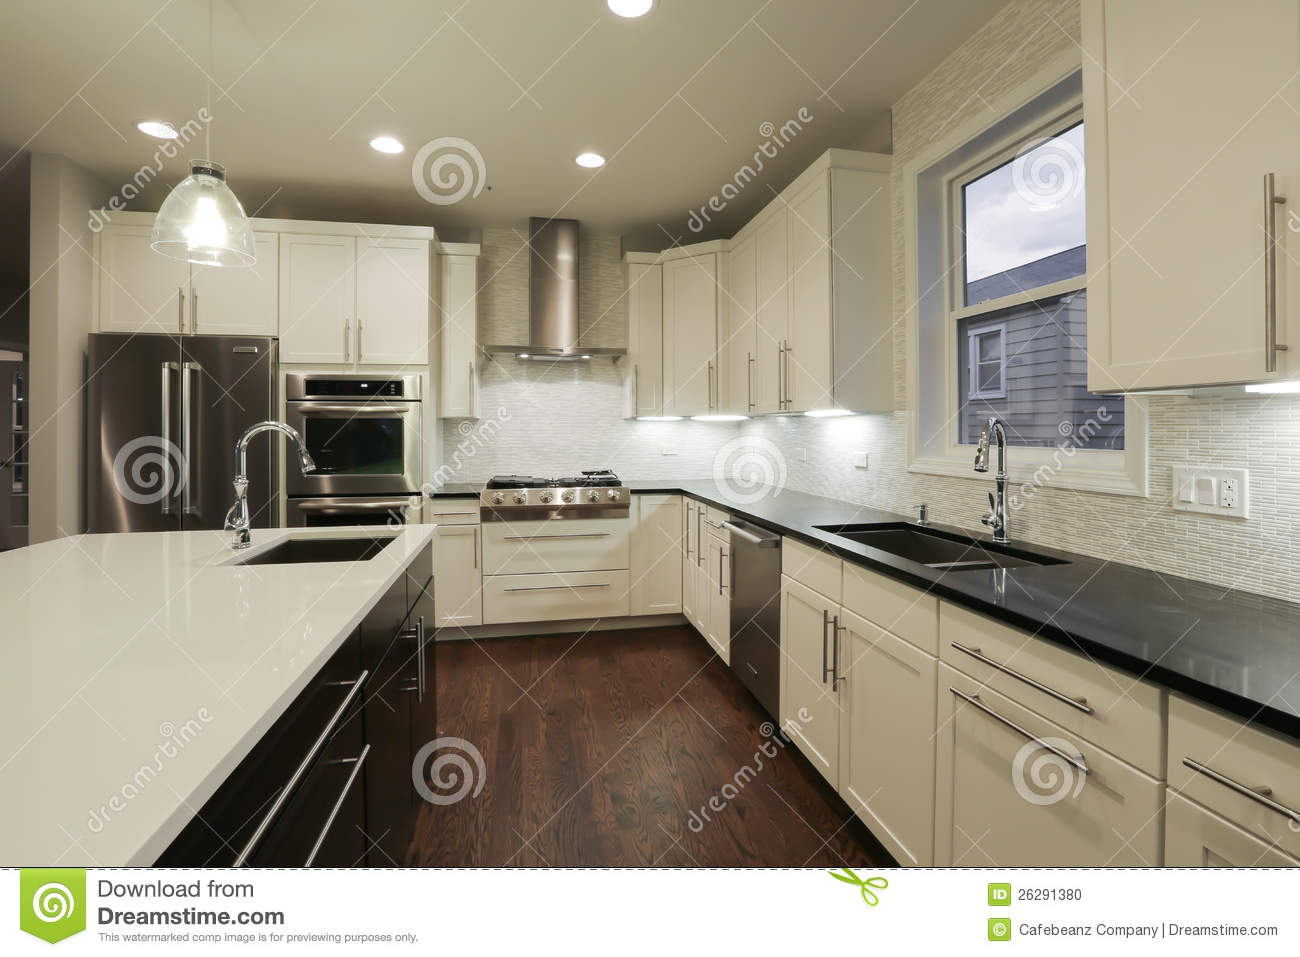 Cuisine la maison neuve photo stock image 26291380 for Agencement interieur maison